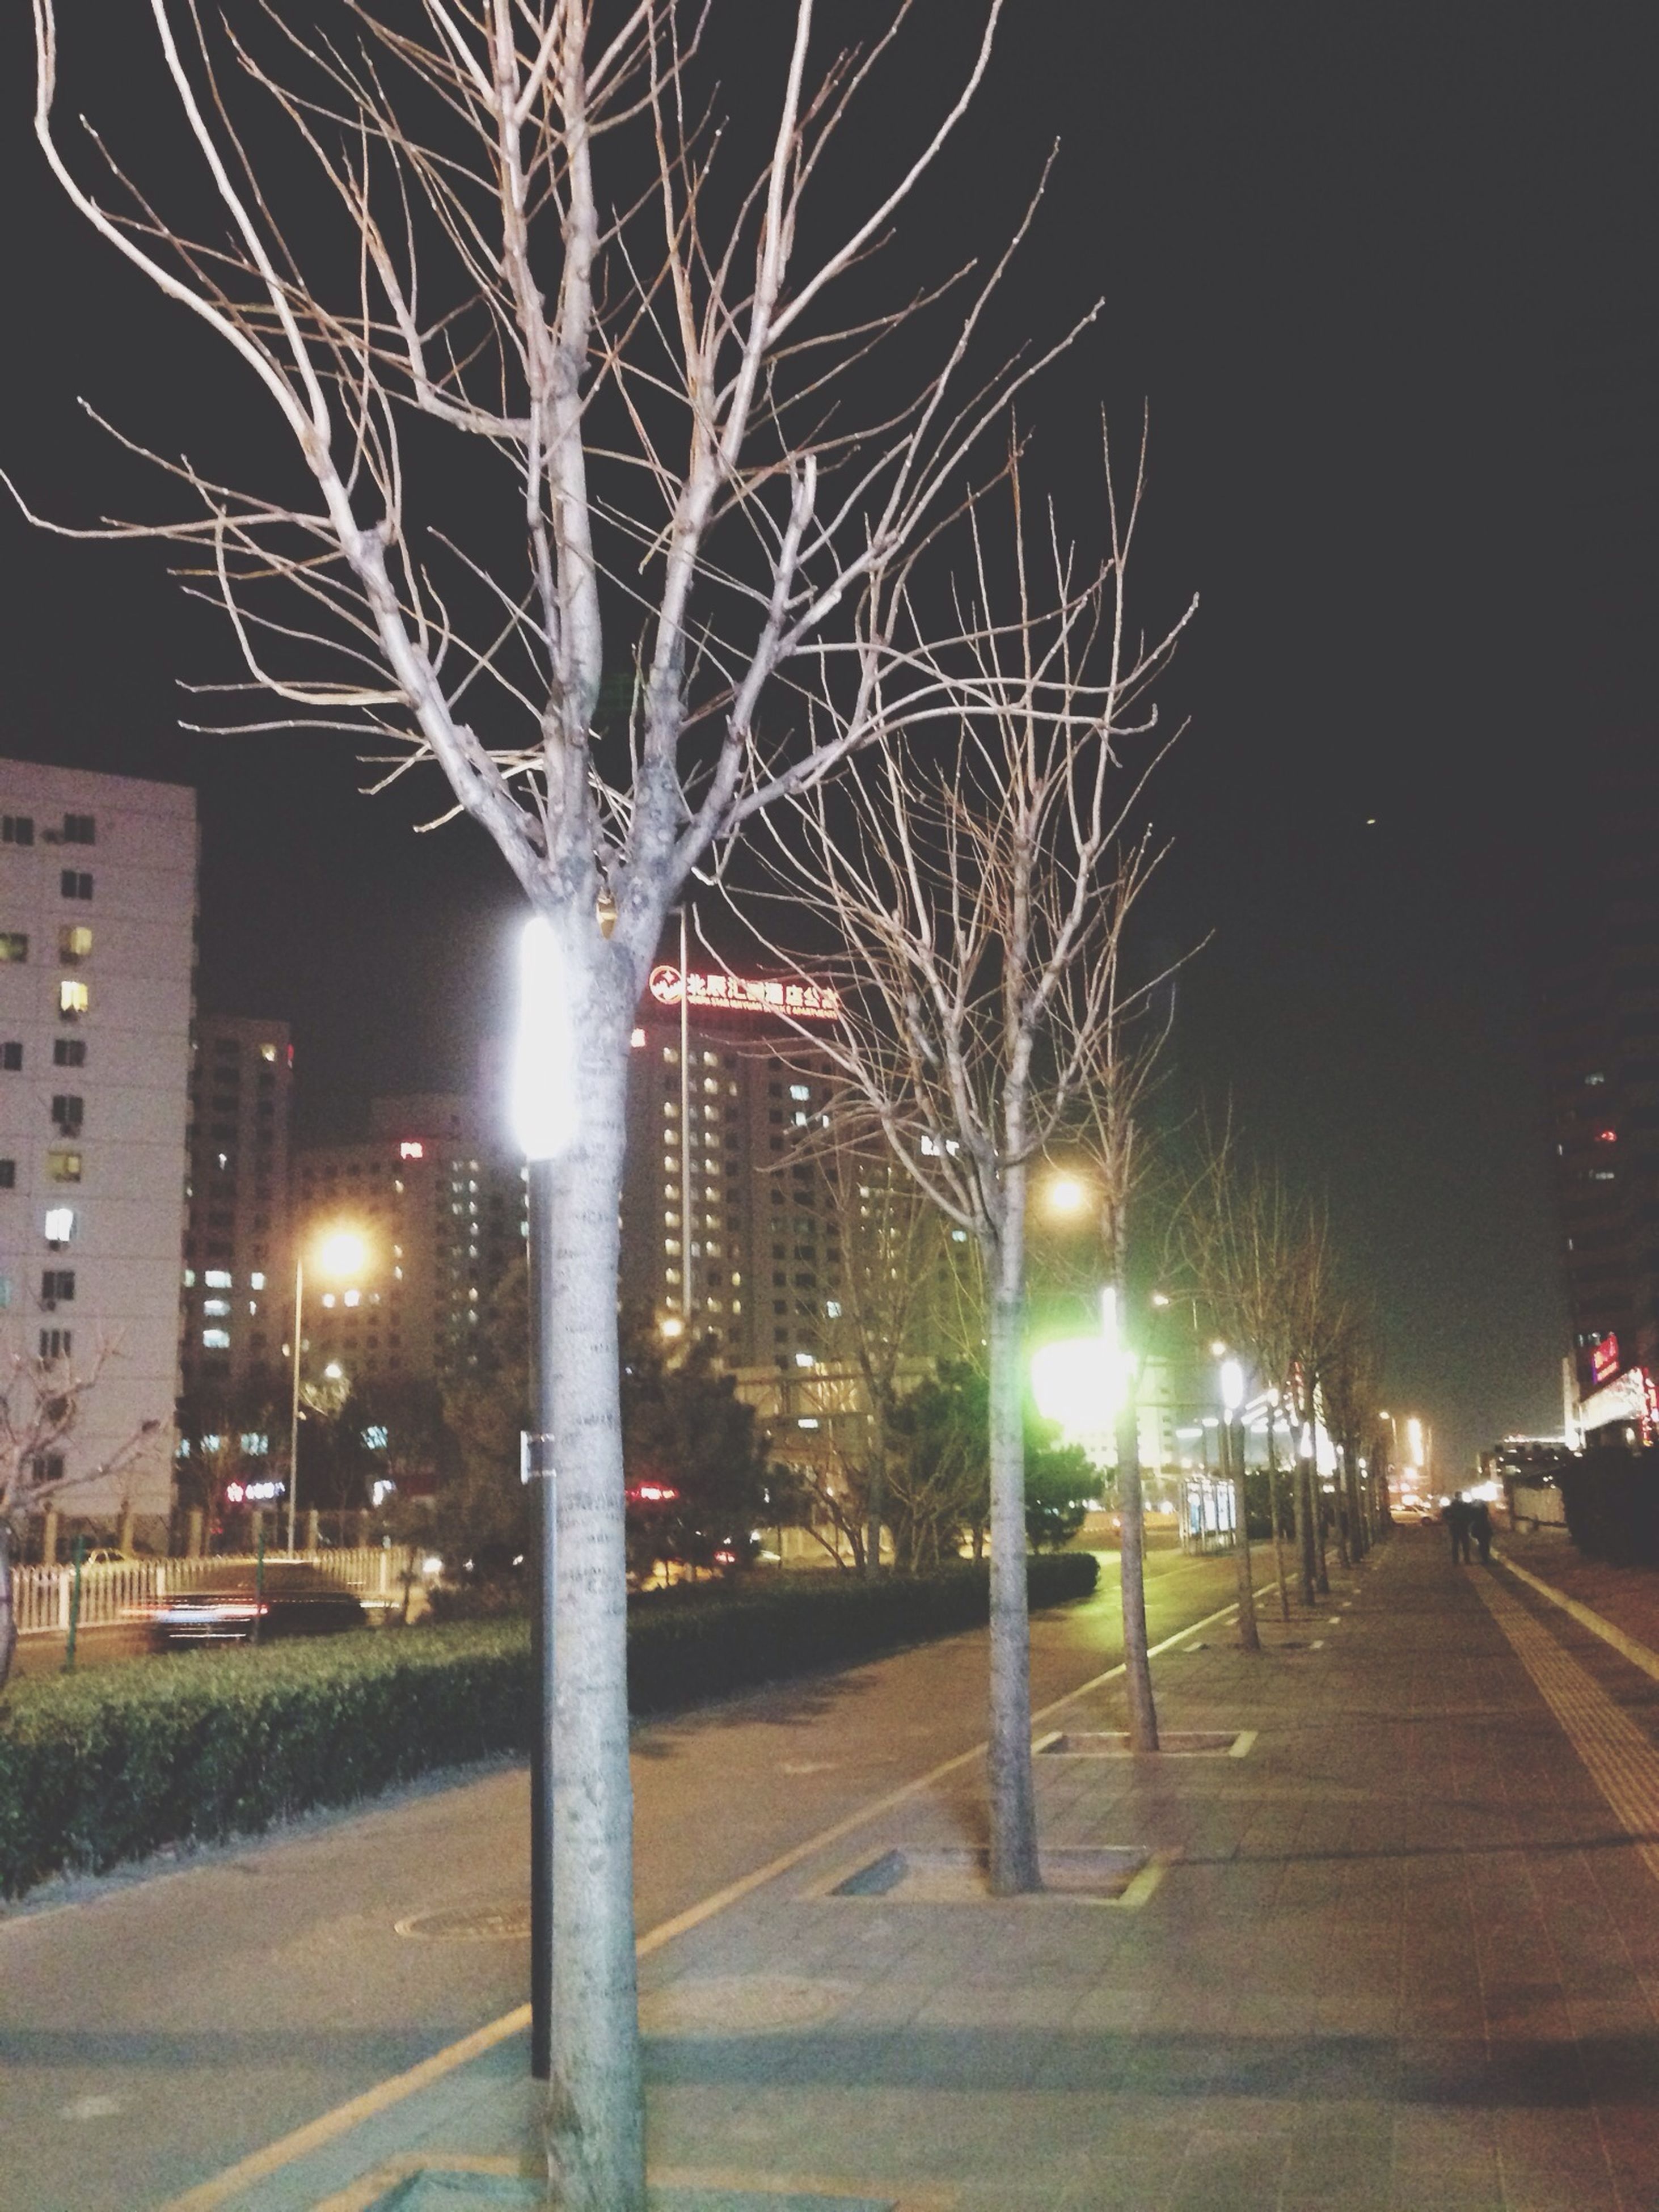 illuminated, night, building exterior, architecture, city, street light, built structure, tree, lighting equipment, street, bare tree, branch, sky, incidental people, road, city life, outdoors, city street, building, transportation